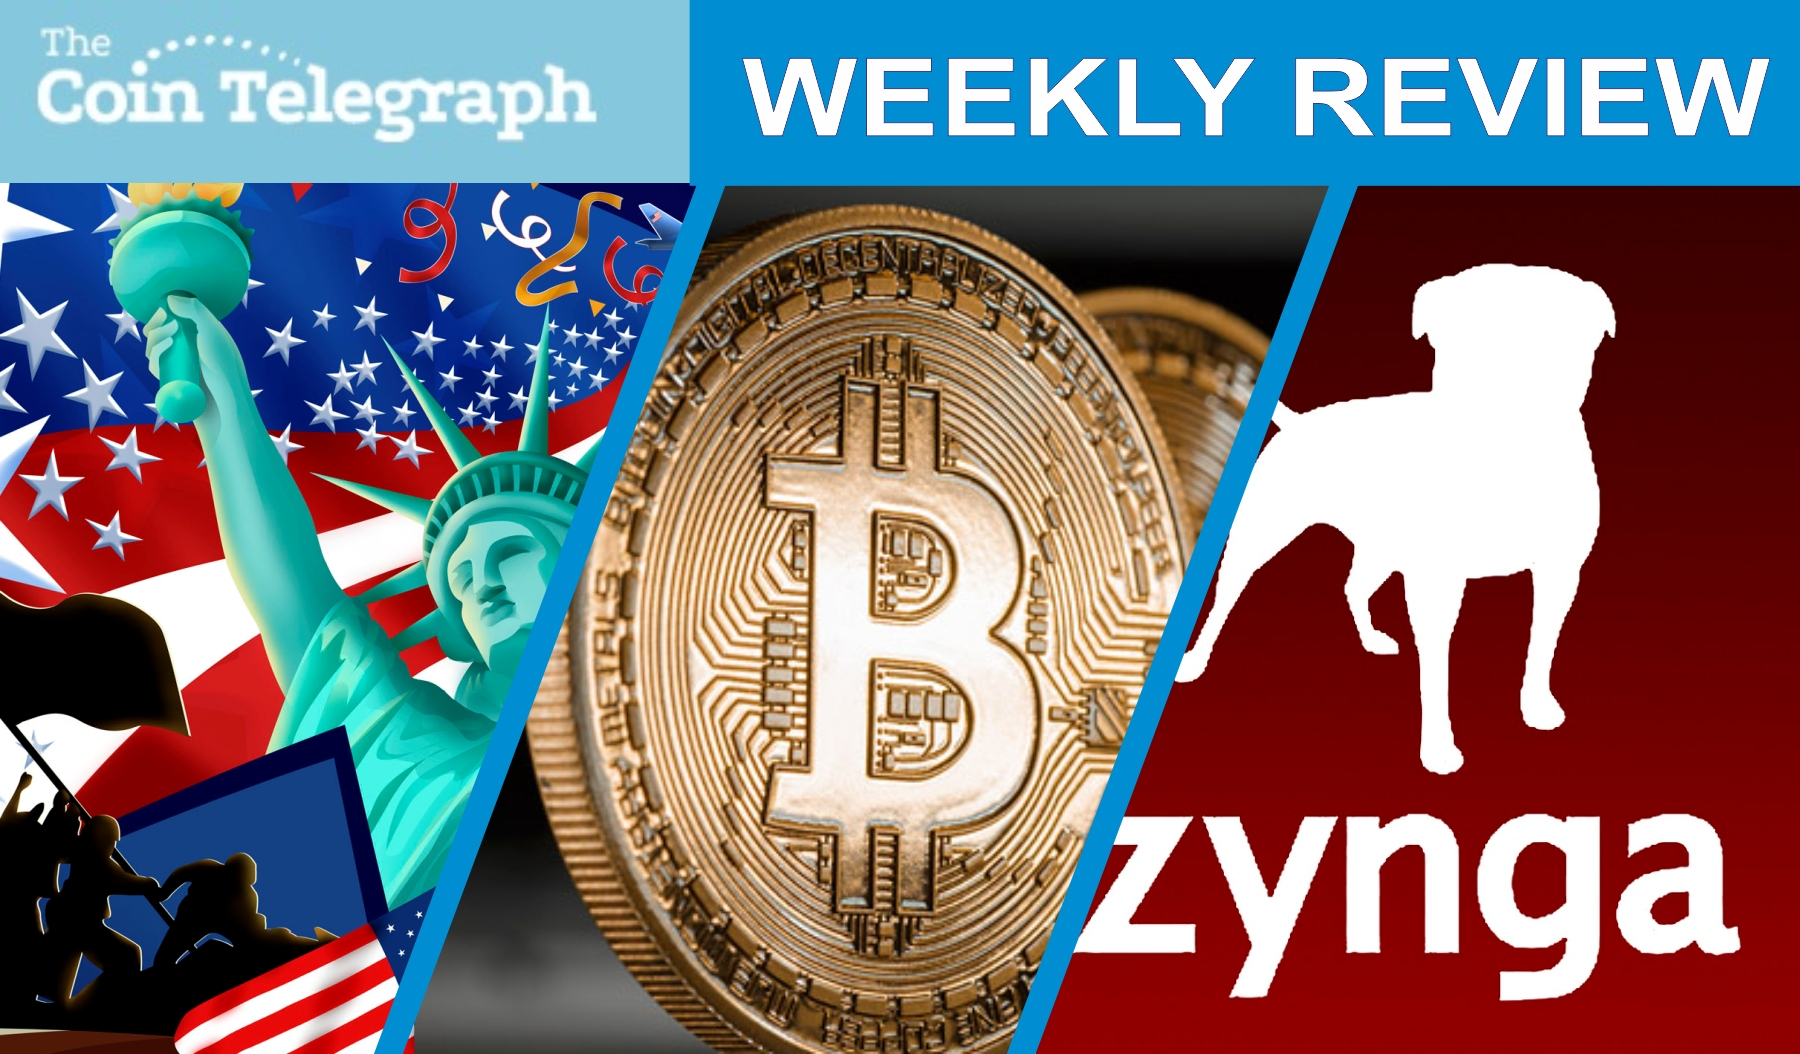 Cointelegraph Weekly Review (Jan.1-11)